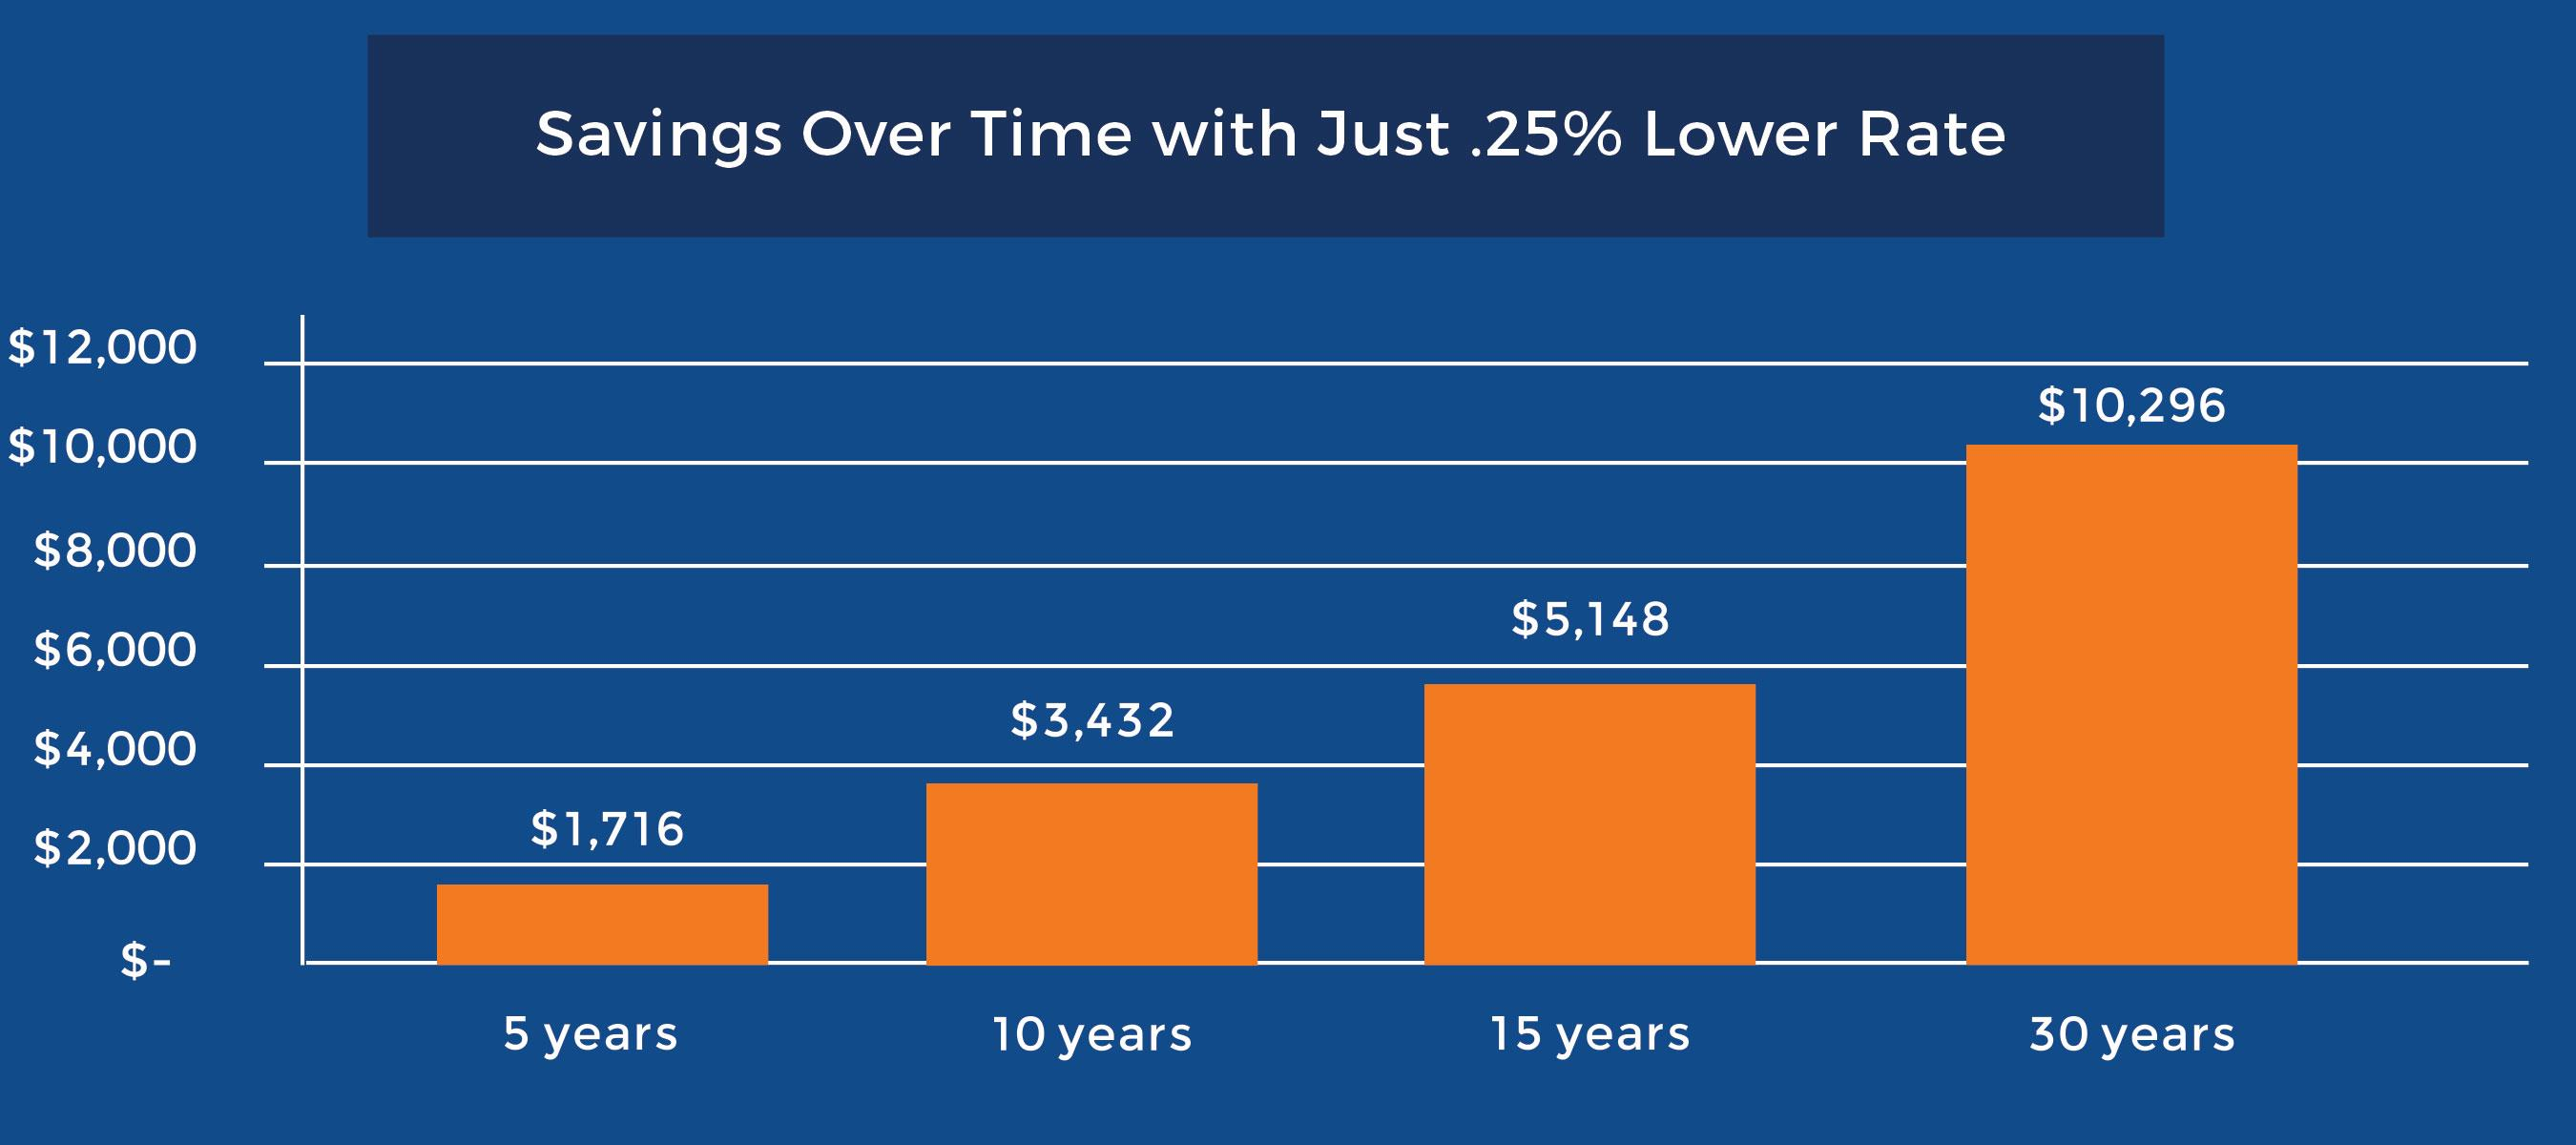 saving over time with just .25% lower rate